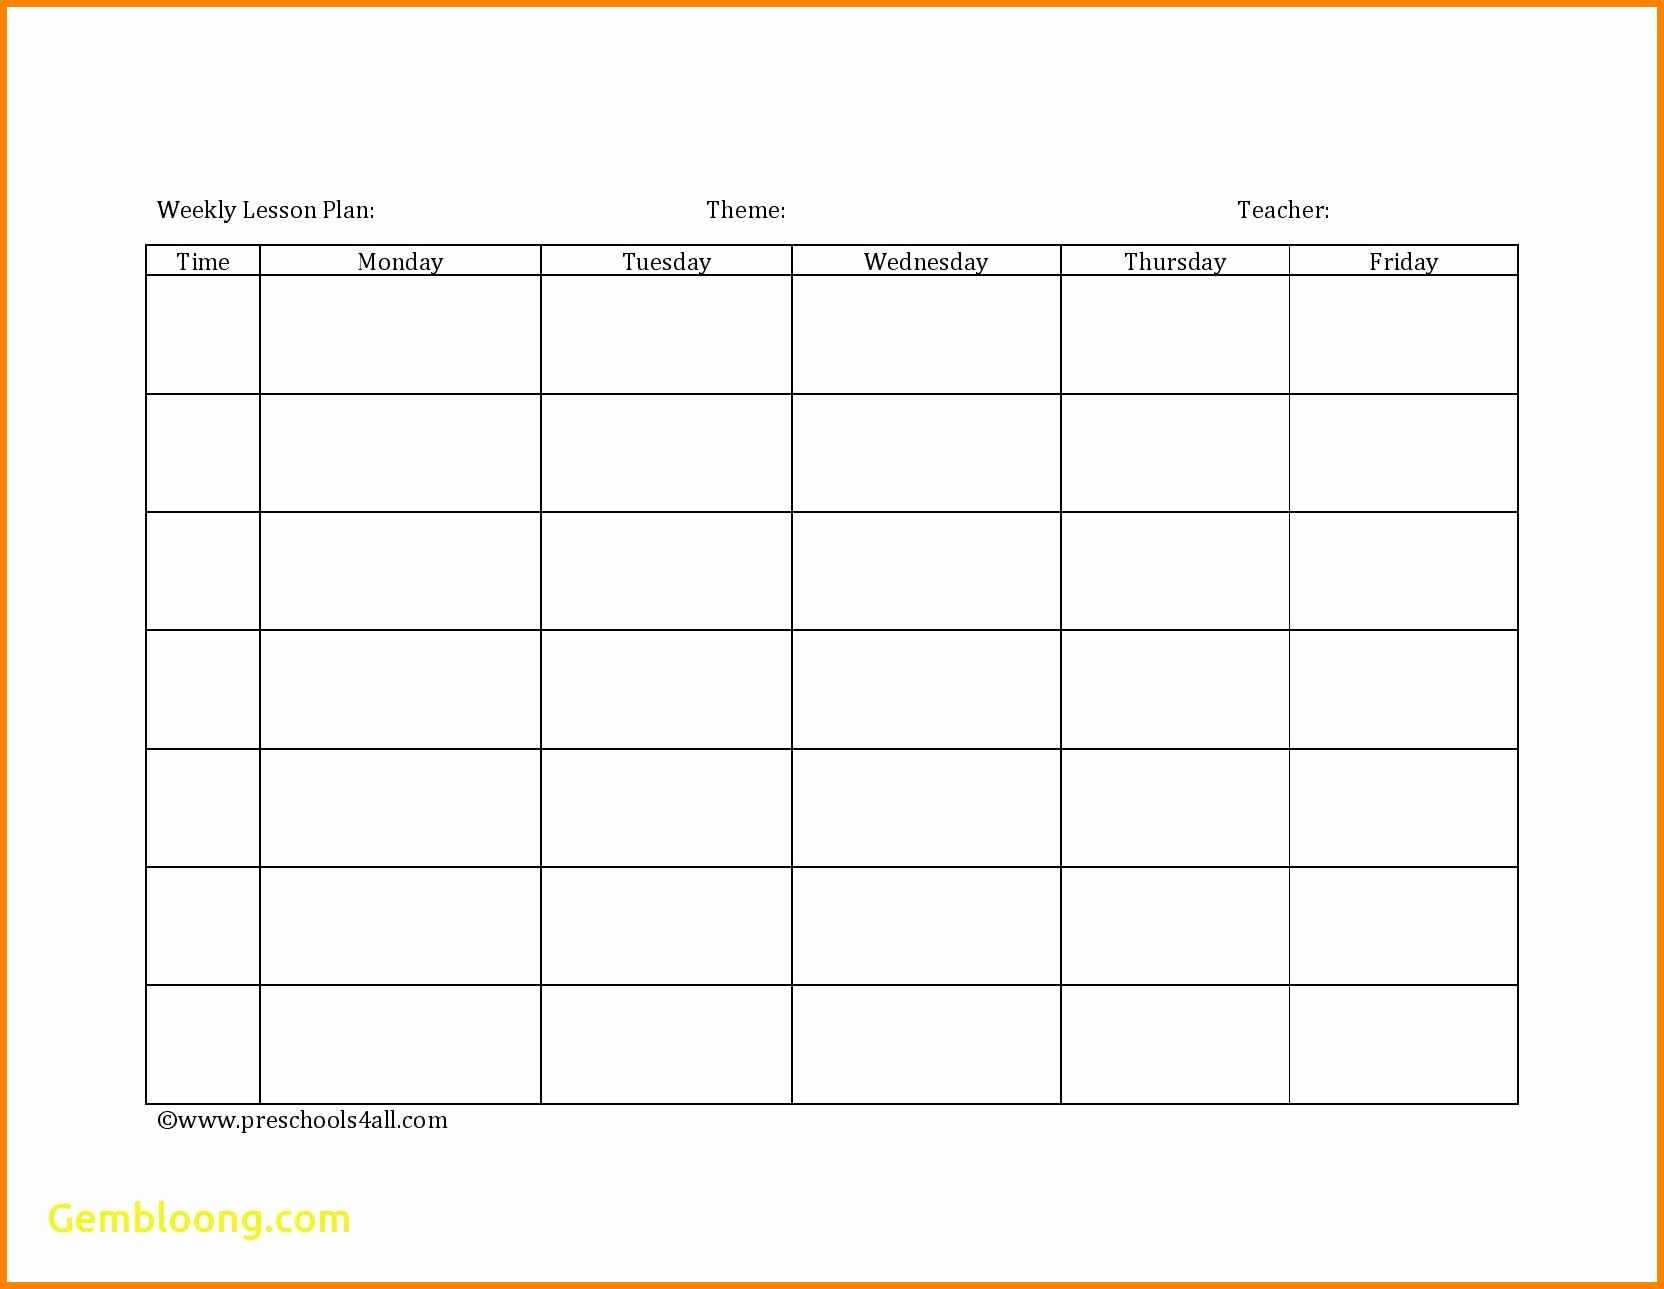 Weekly Lesson Plan Template Pdf Best Of 7 Editable Weekly Lesson Plan Template